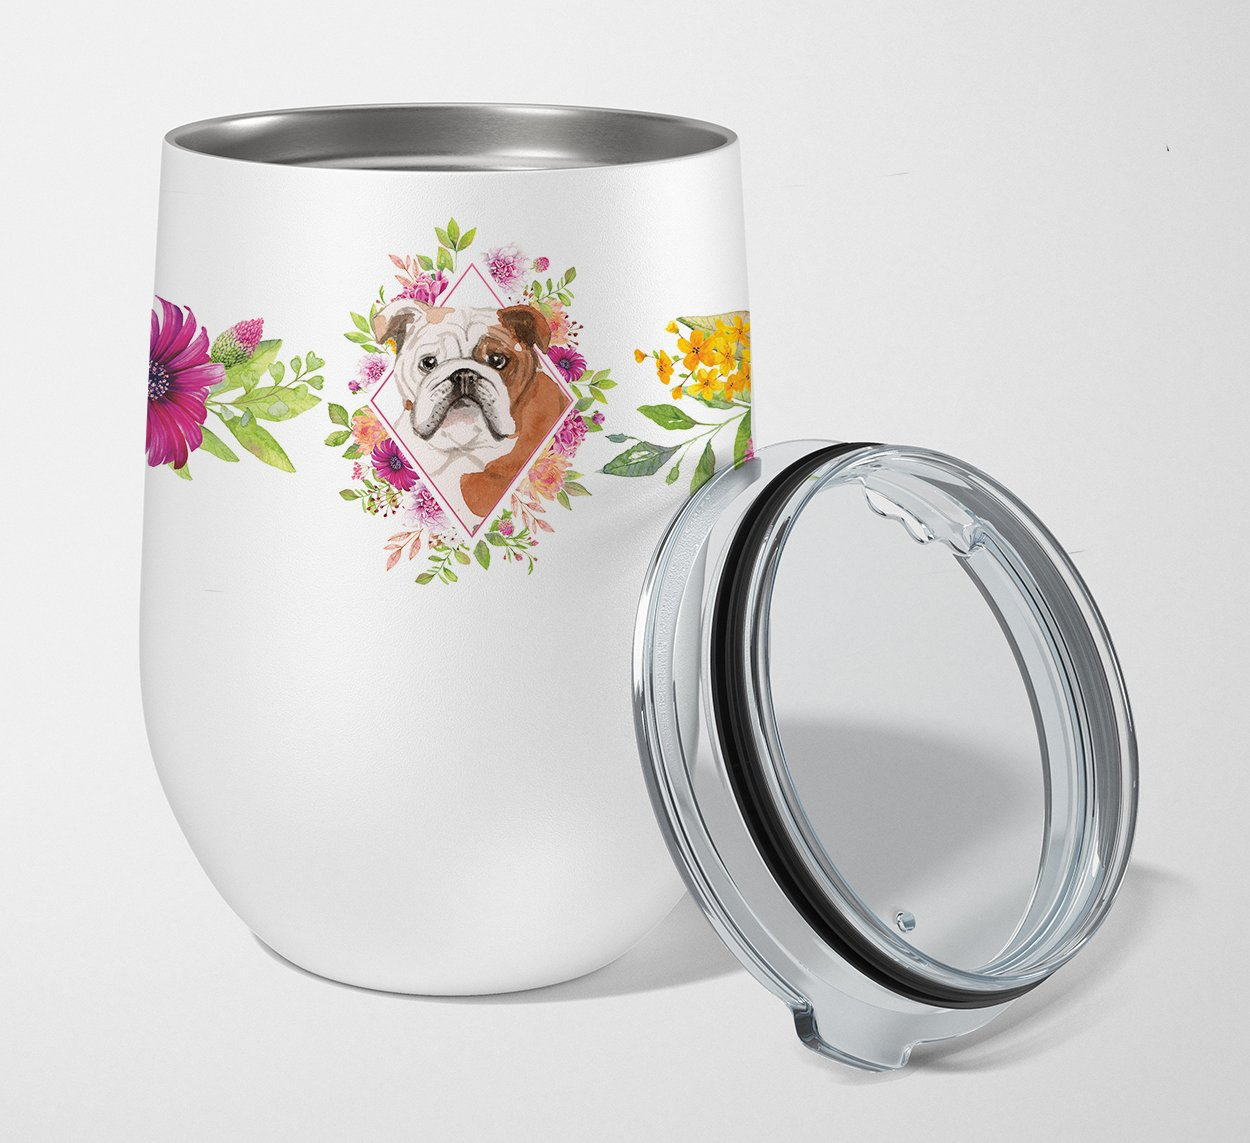 English Bulldog Pink Flowers Stainless Steel 12 oz Stemless Wine Glass CK4240TBL12 by Caroline's Treasures